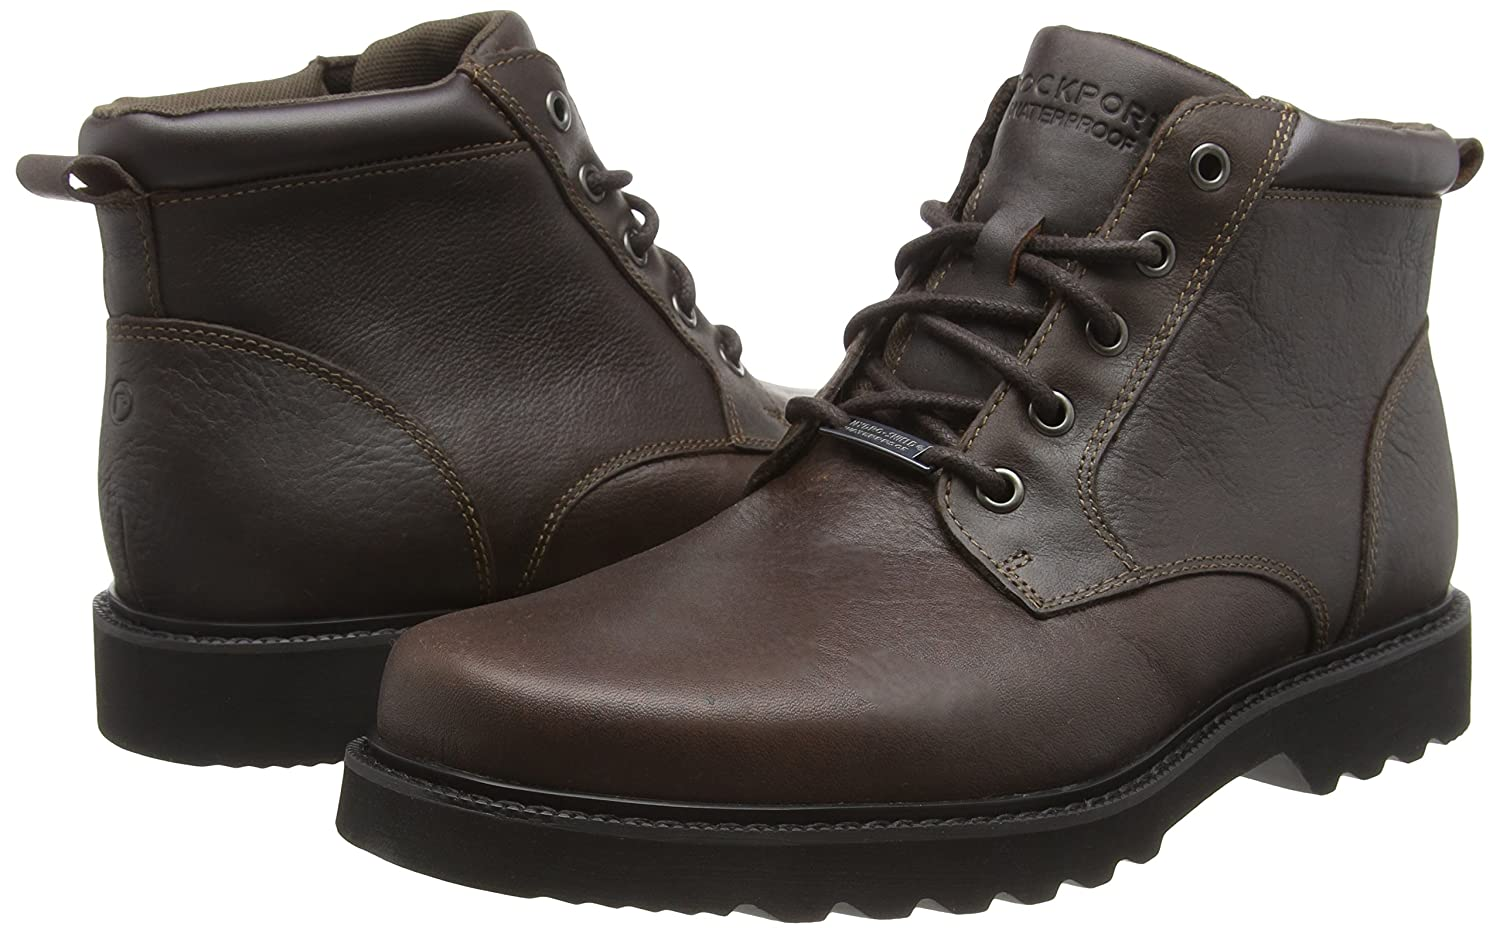 Amazon.com: Rockport Northfield Plain Toe Hombre Botas café ...